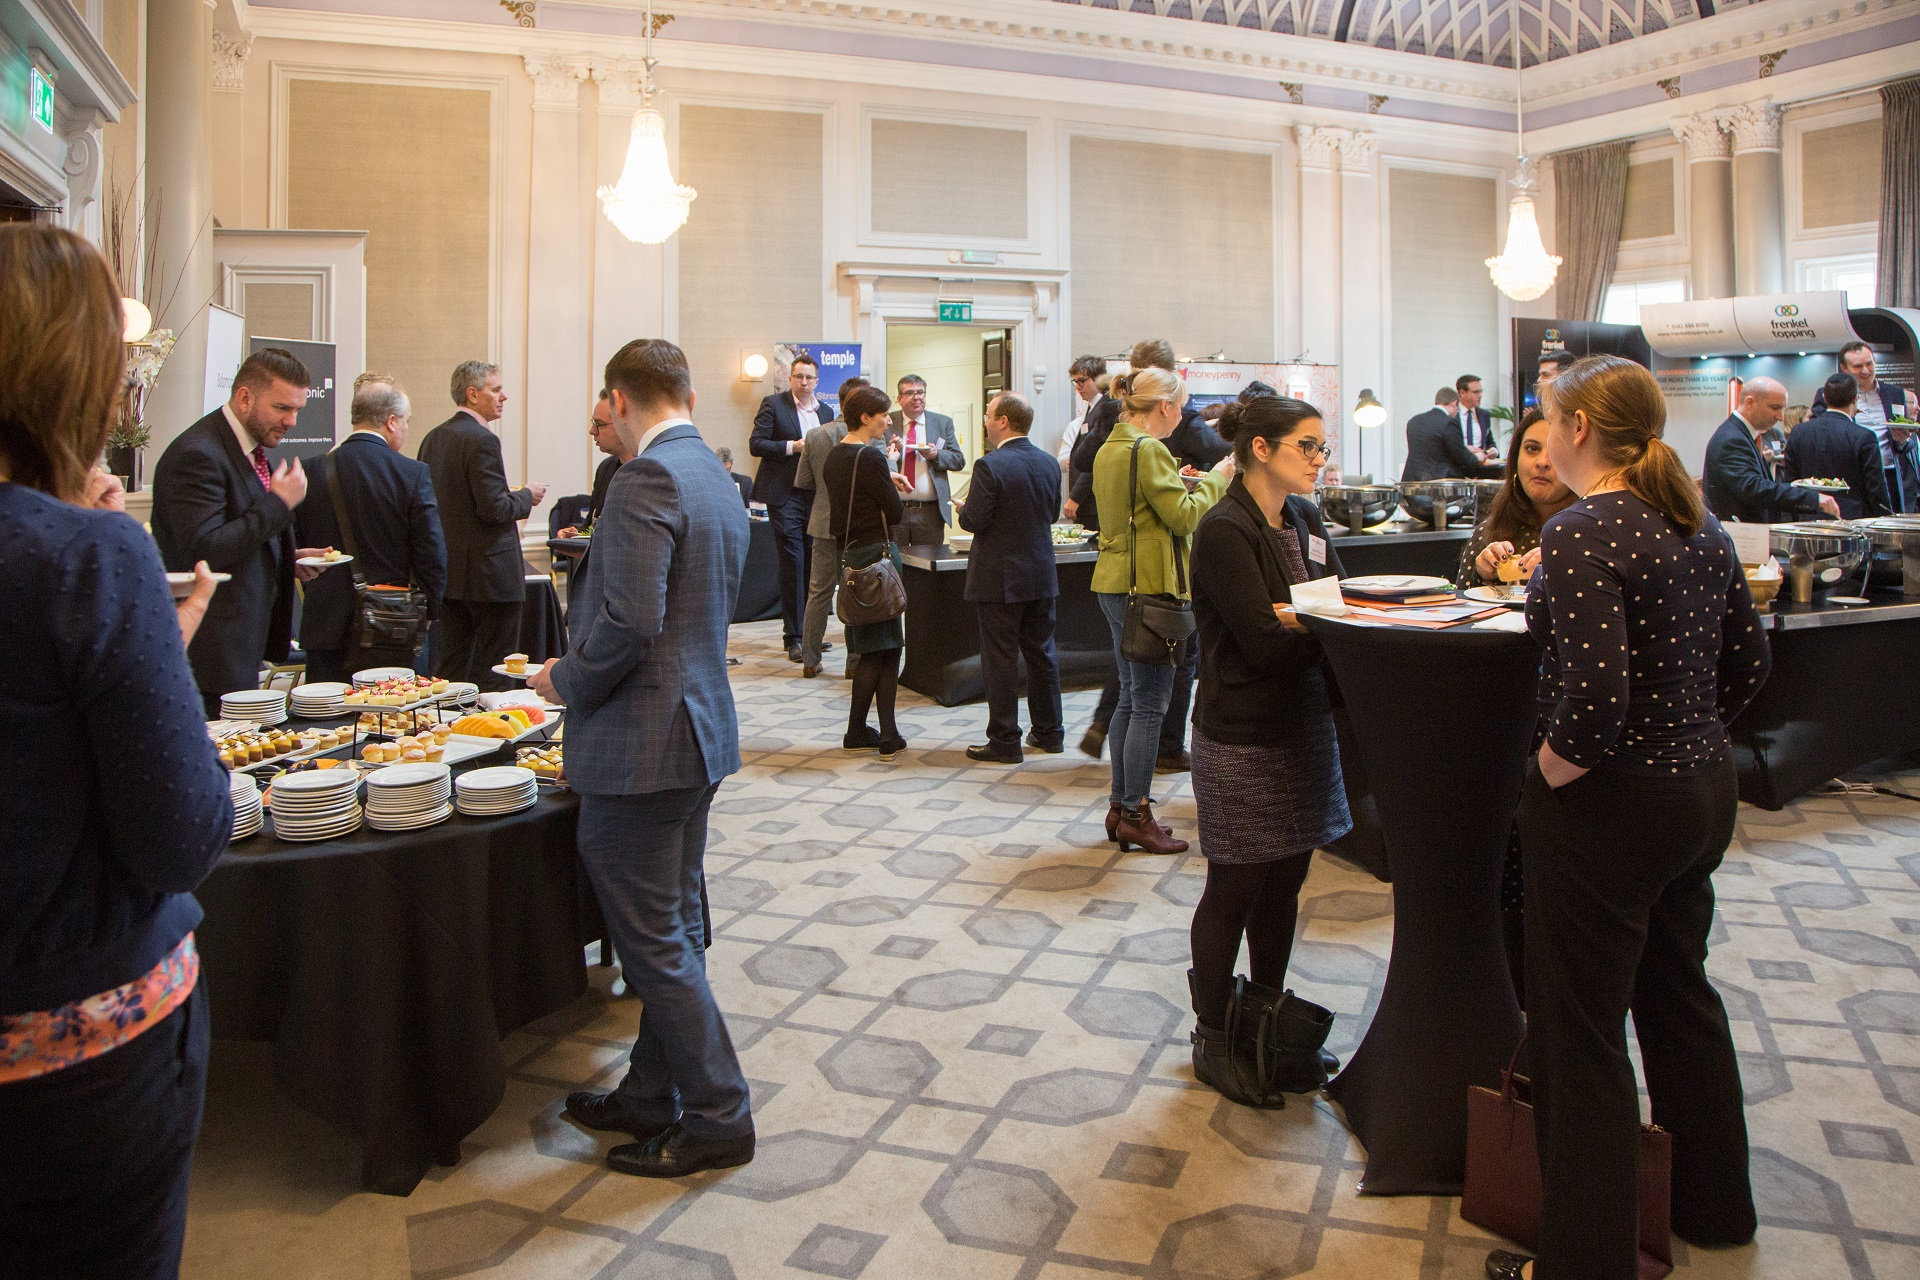 Litigation Futures Conference, March 19th 2019